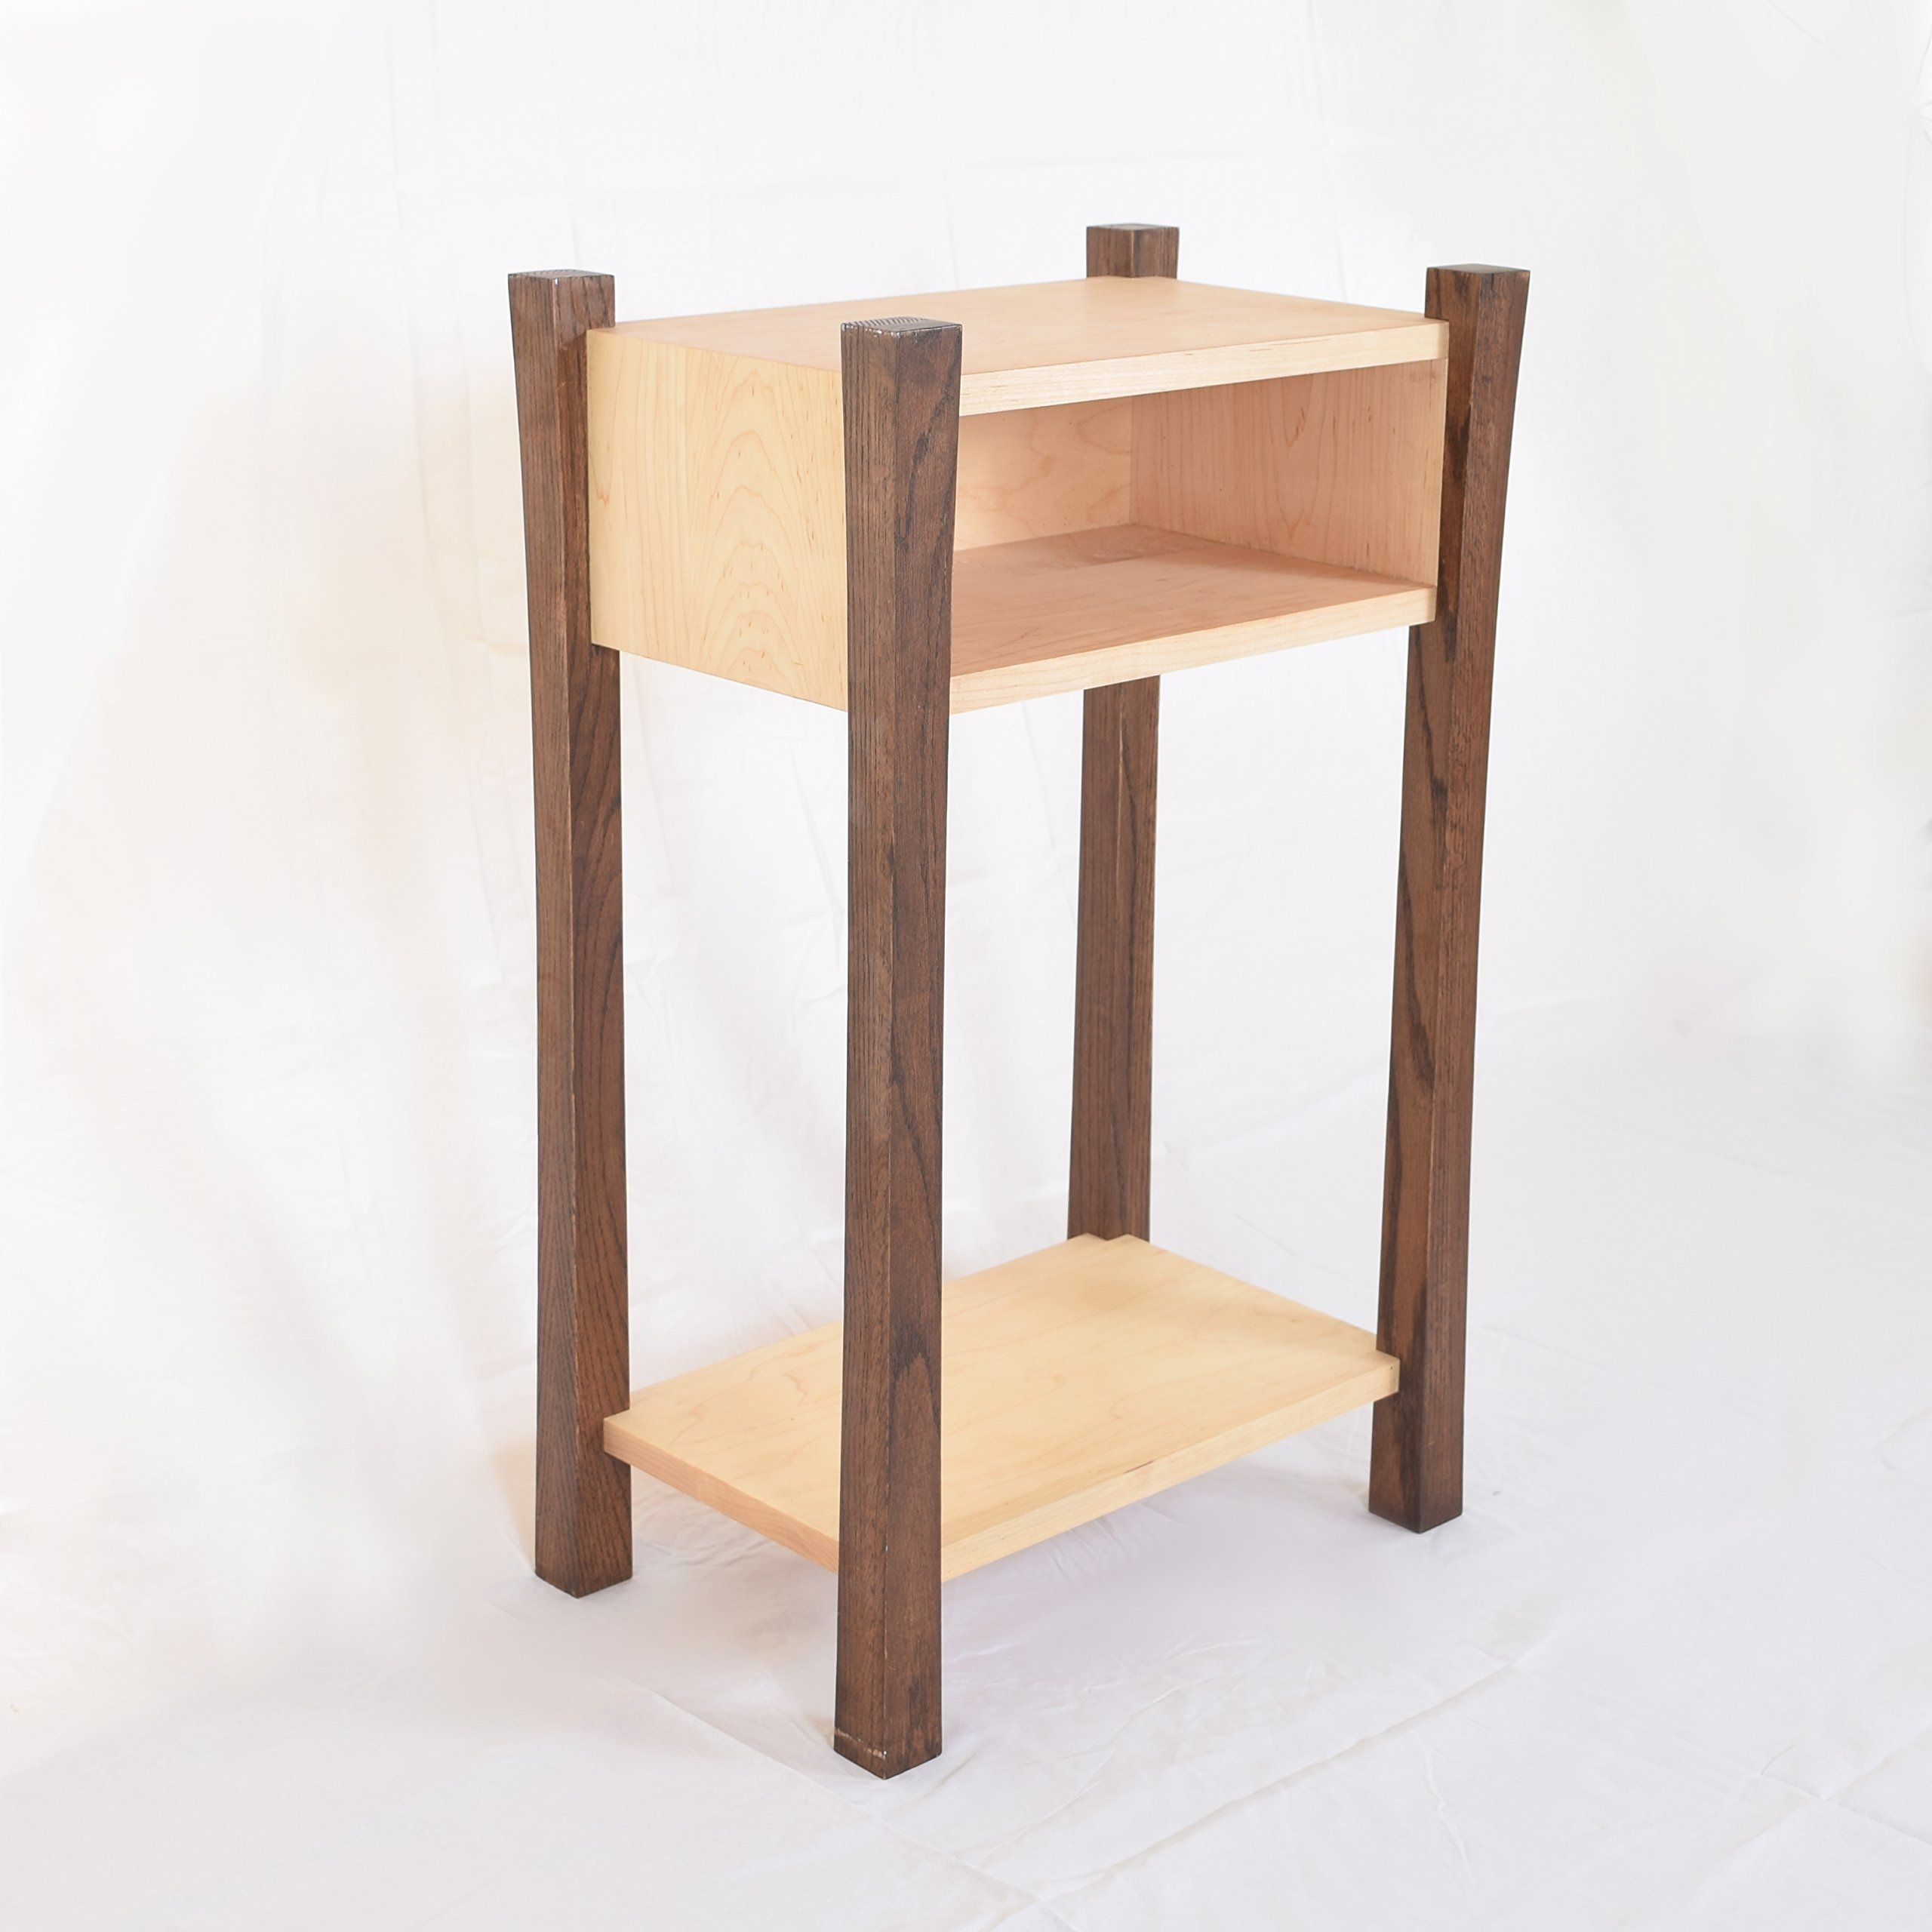 Bedside table asian style stylish modern wood bedside table this